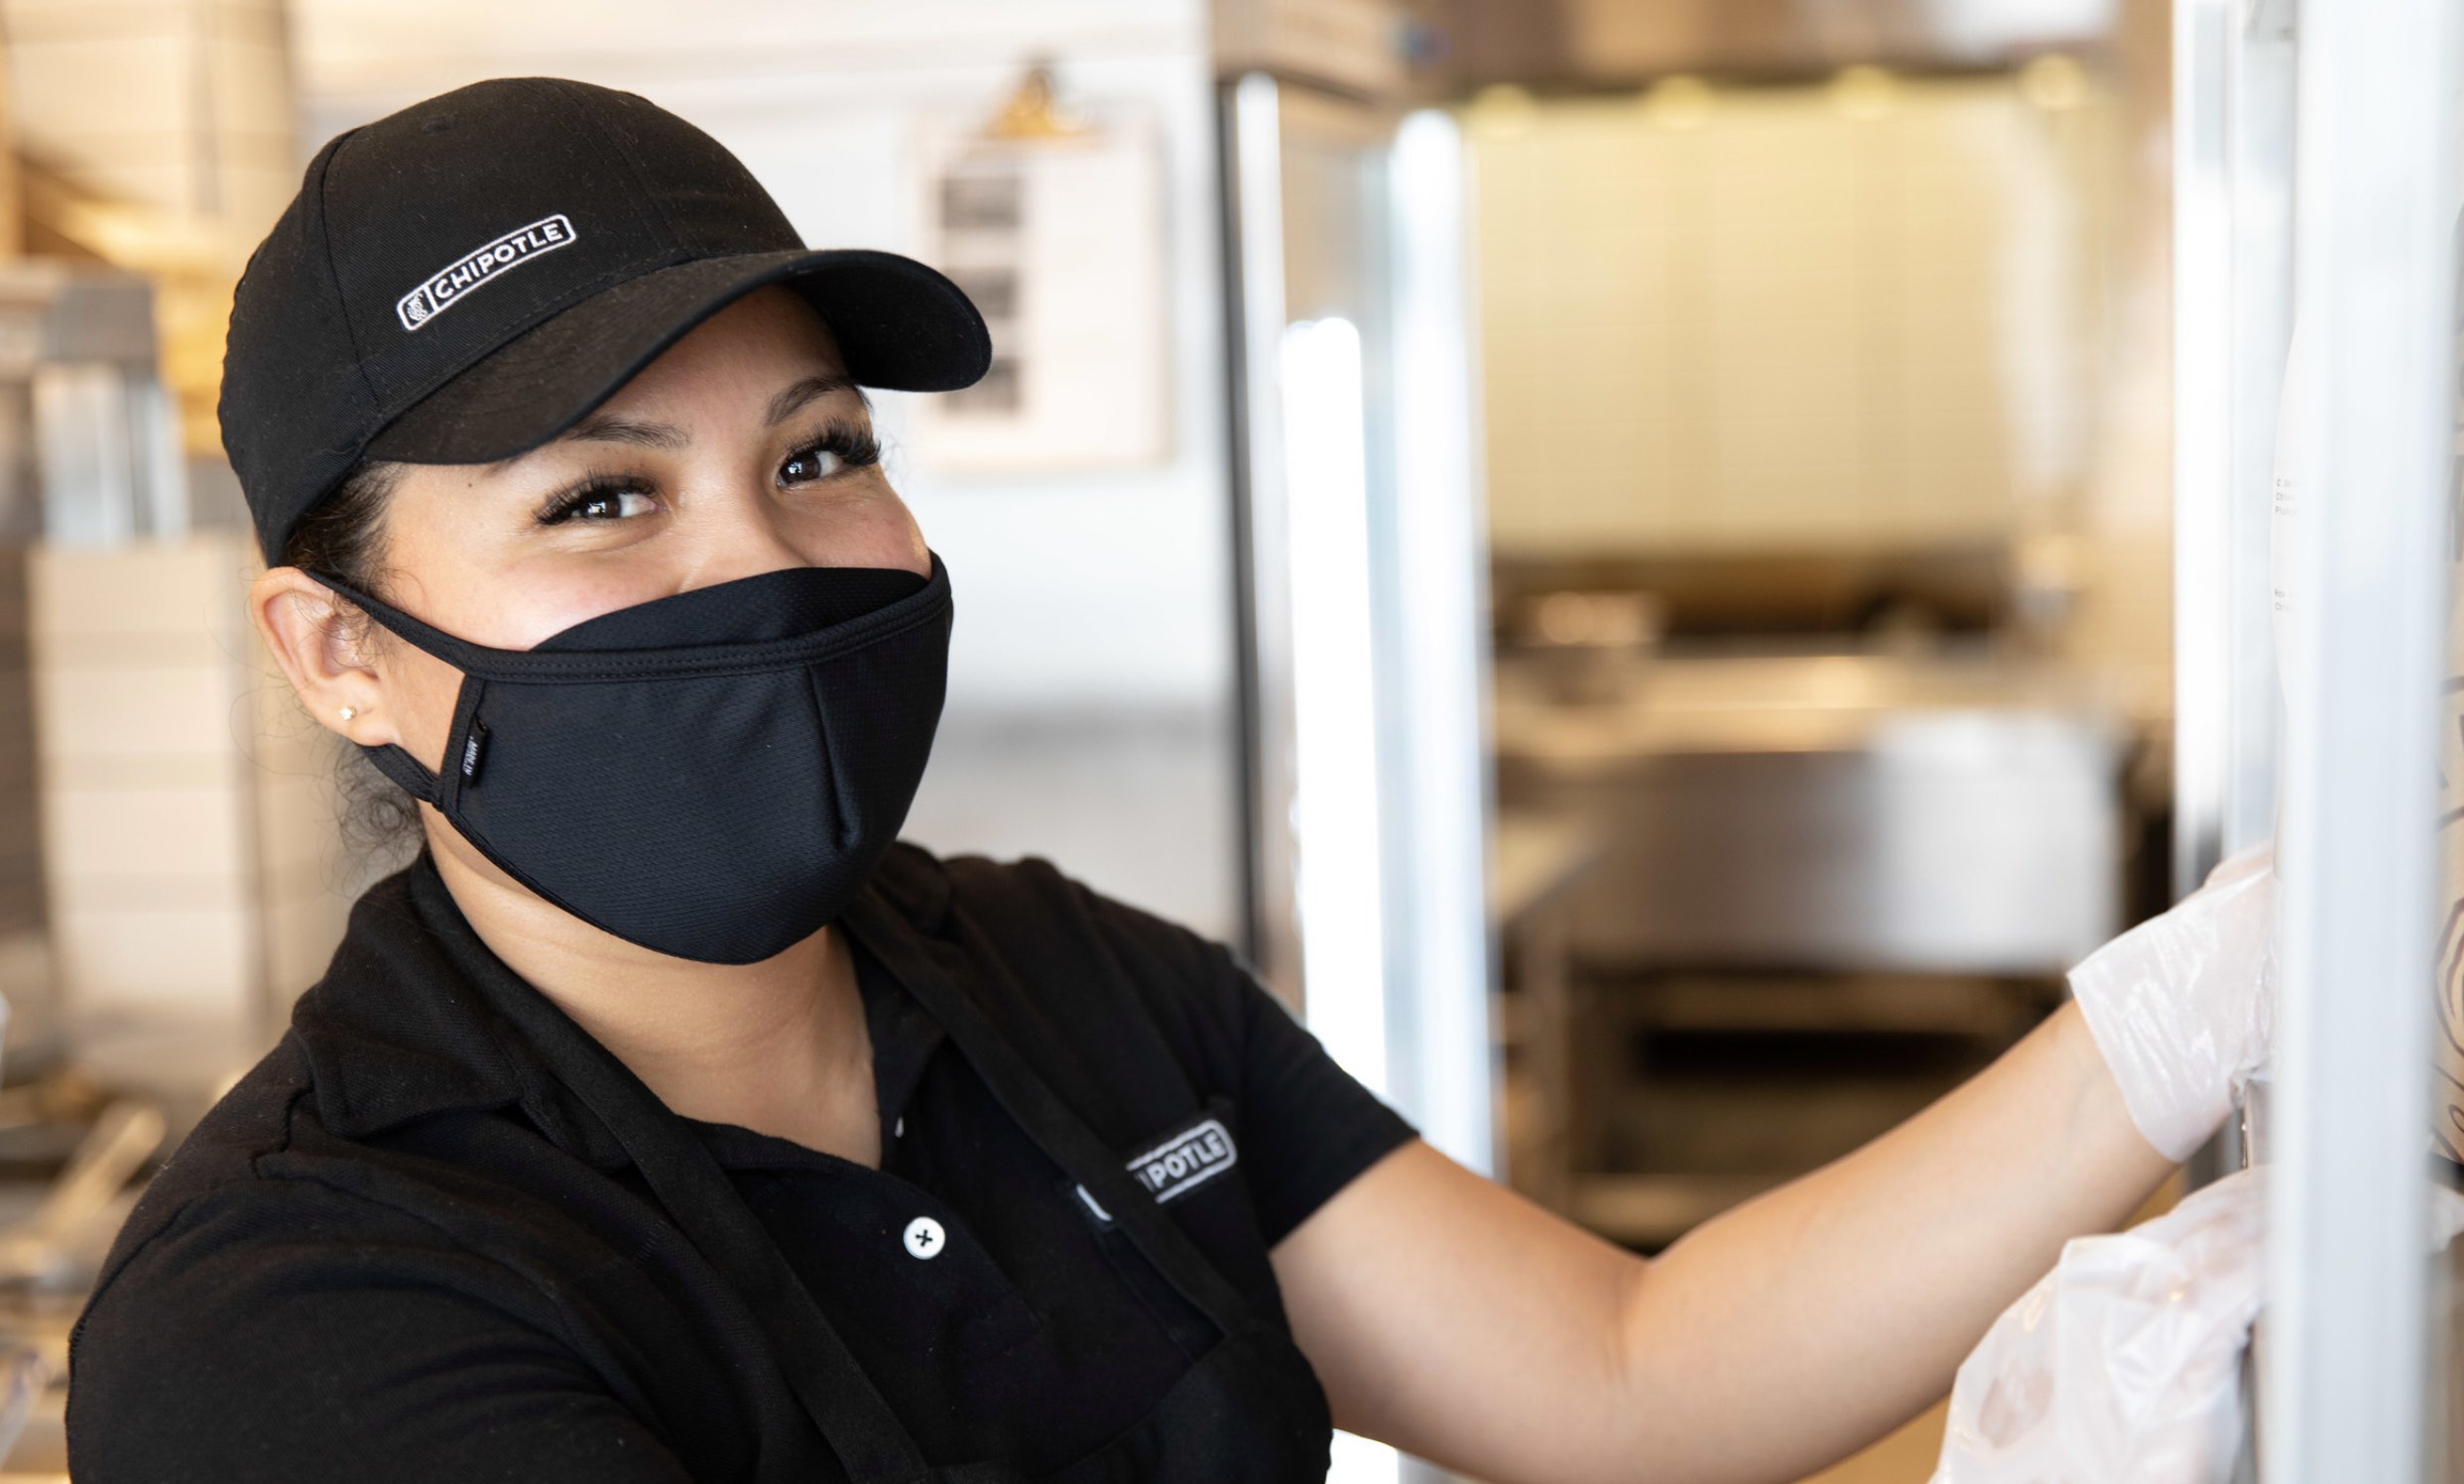 chipotle wages